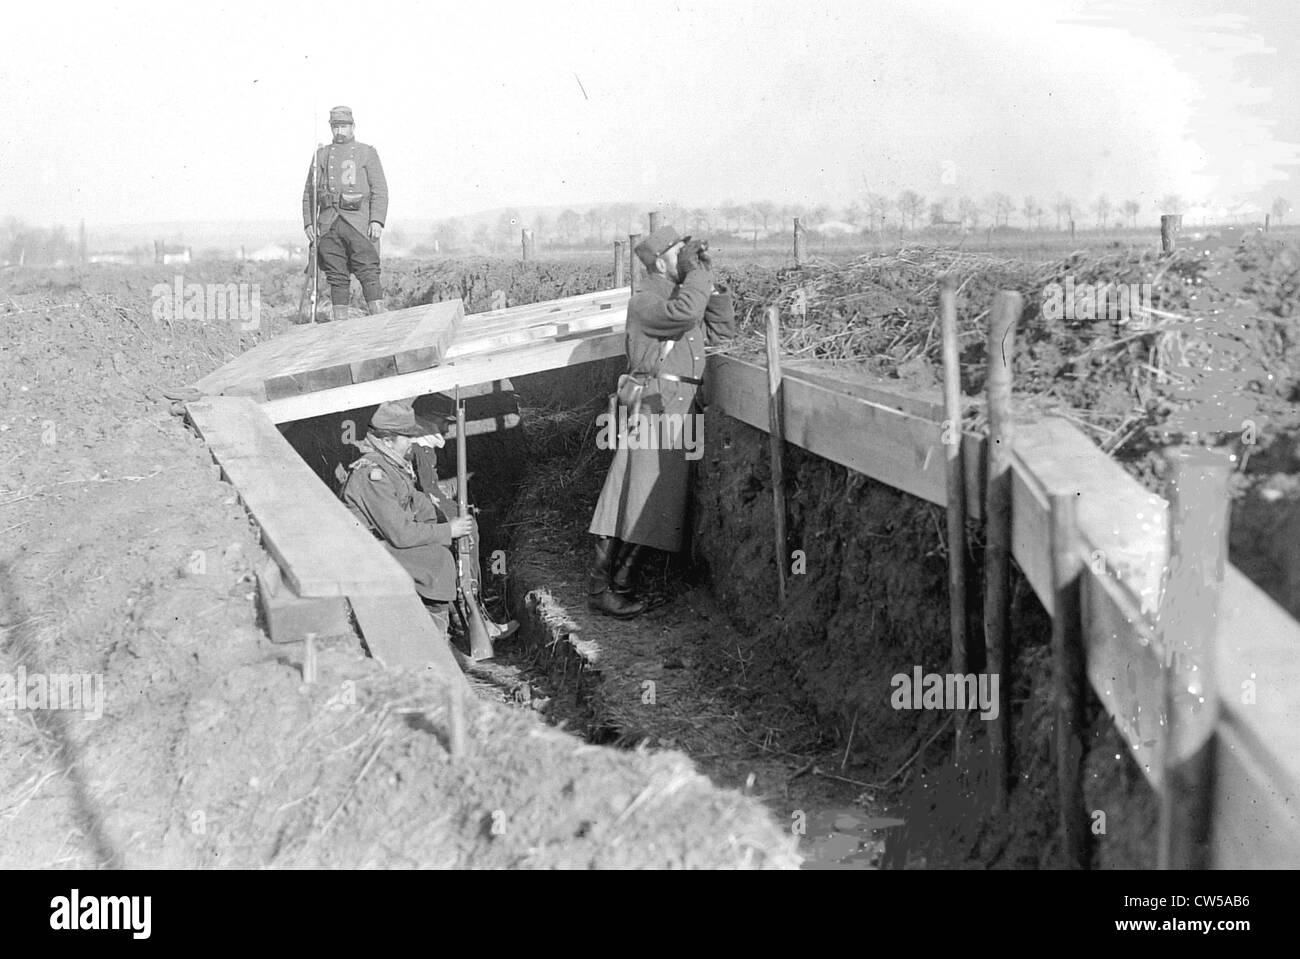 A visit to the east, an officer in the trenches - Stock Image